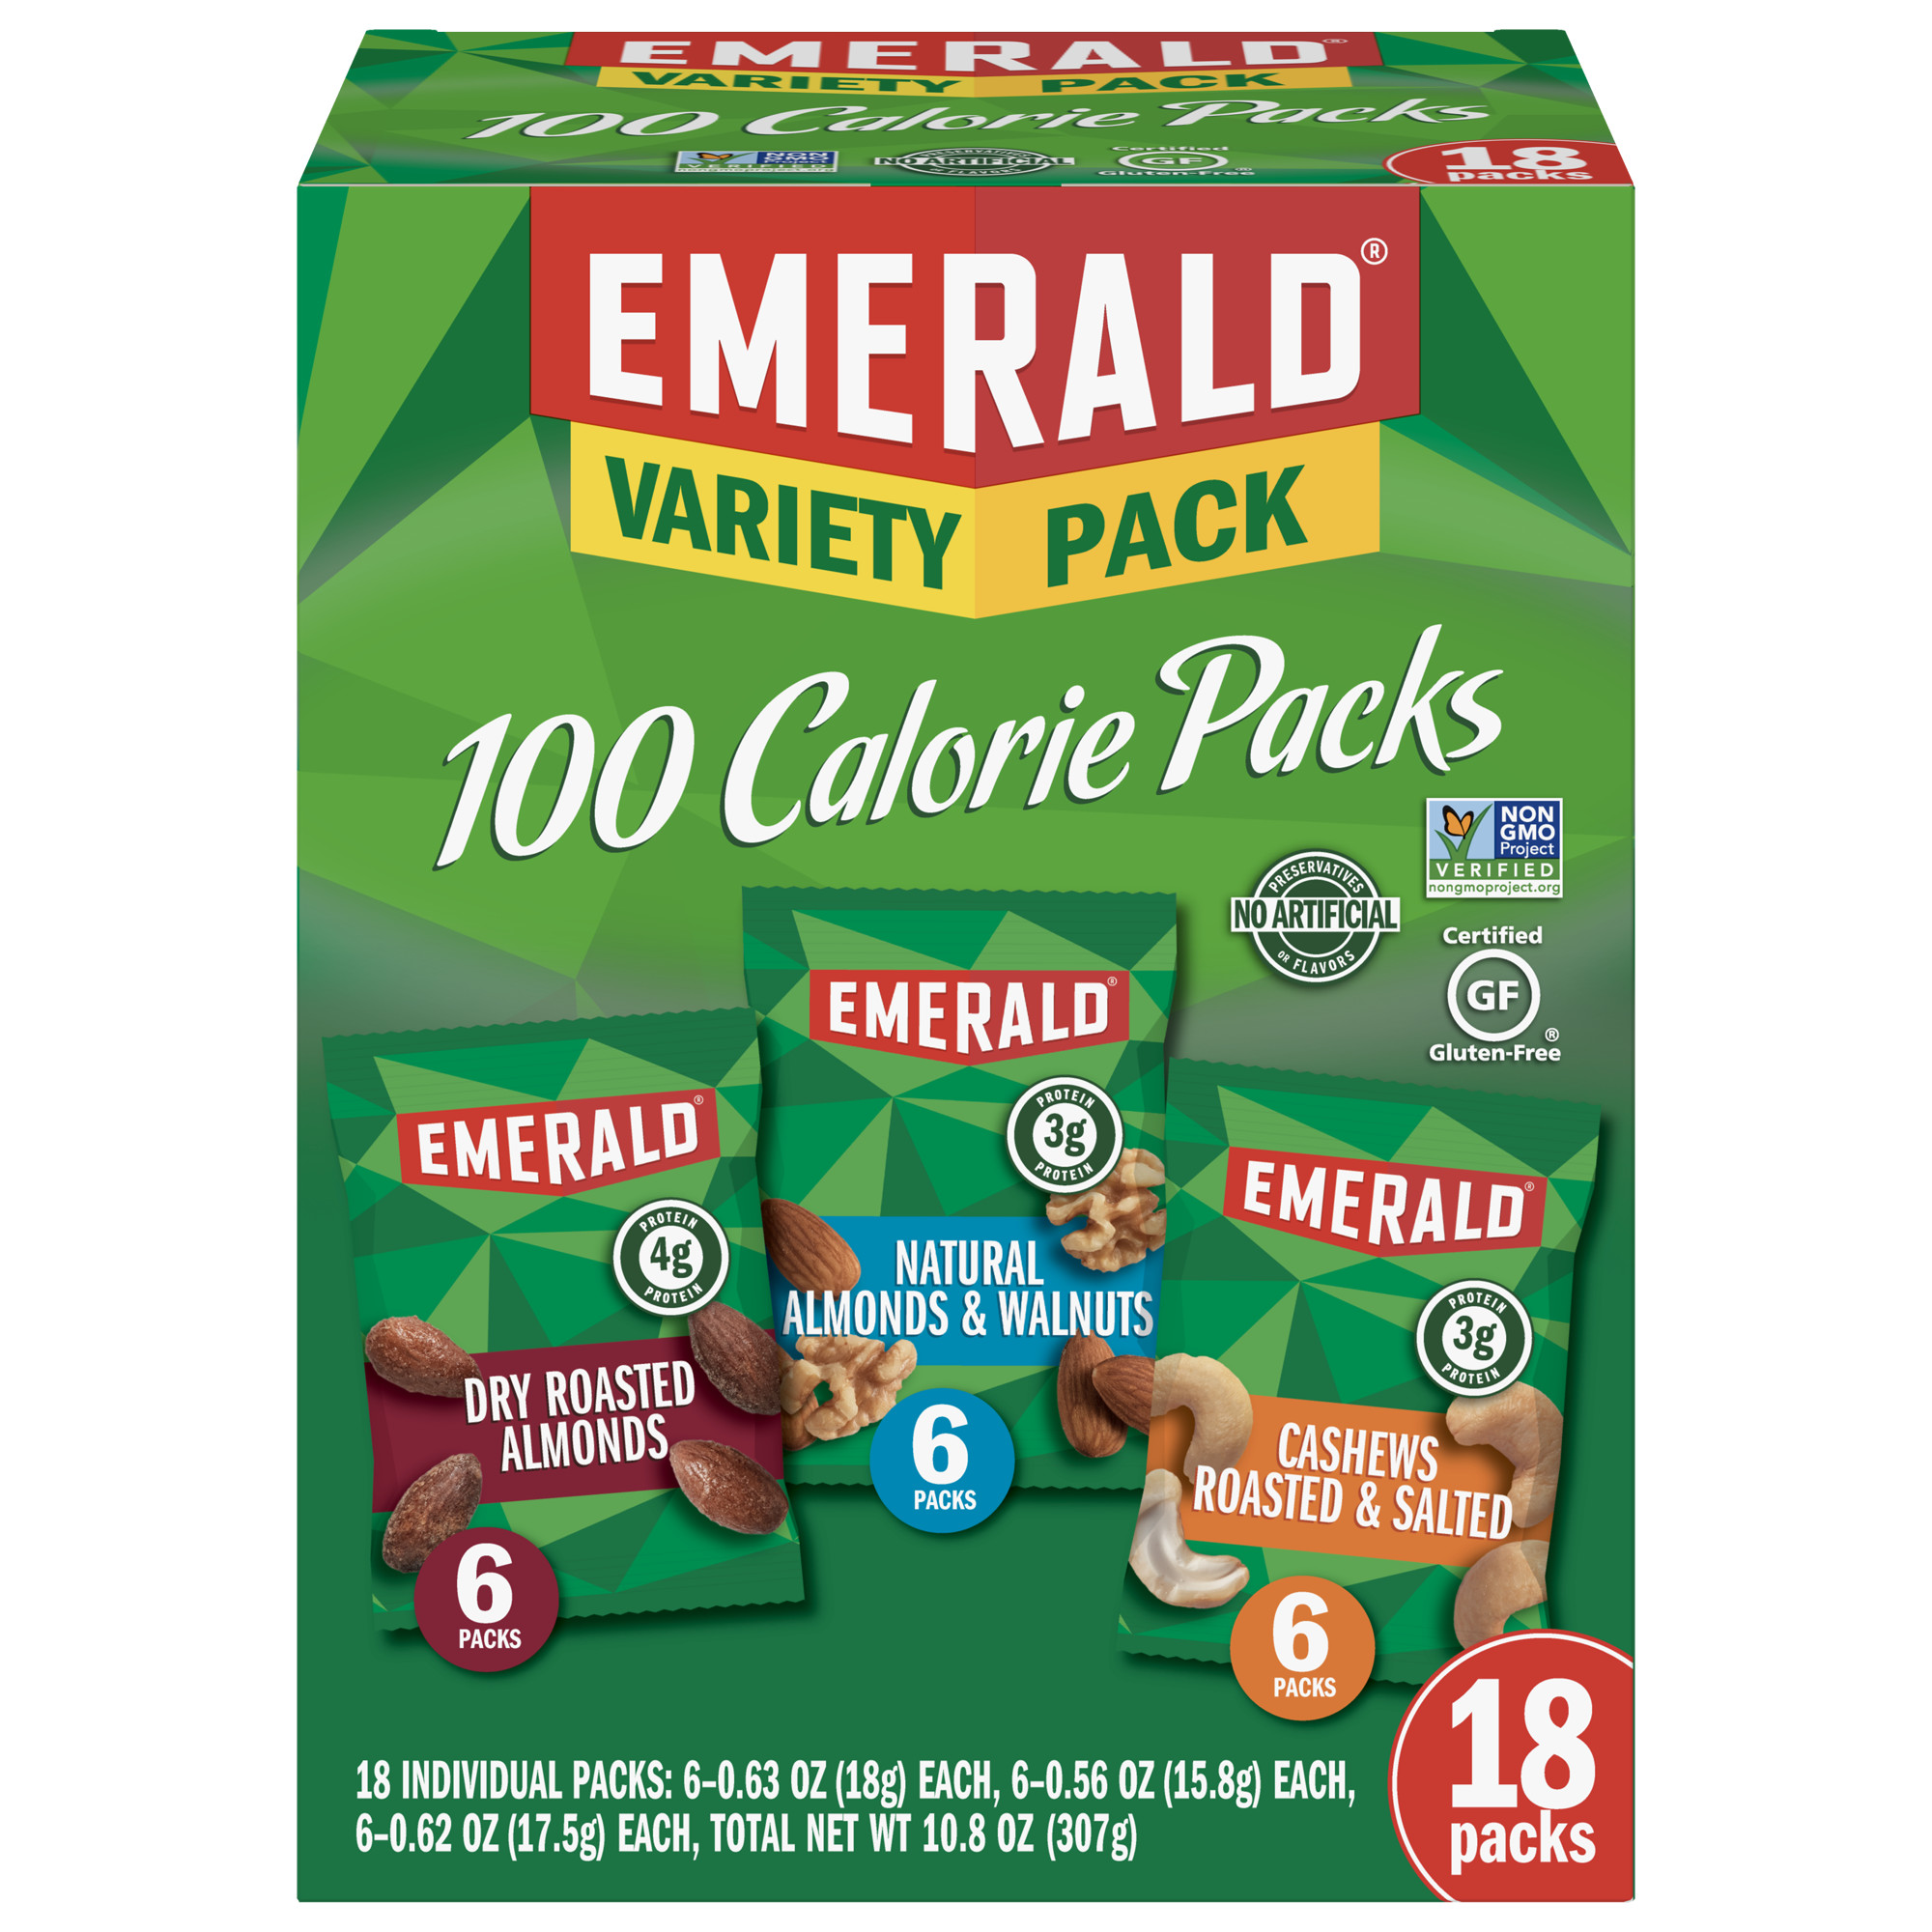 Emerald Nuts Variety Pack, 100 Calorie Almonds, Walnuts, Cashews, 18 Ct